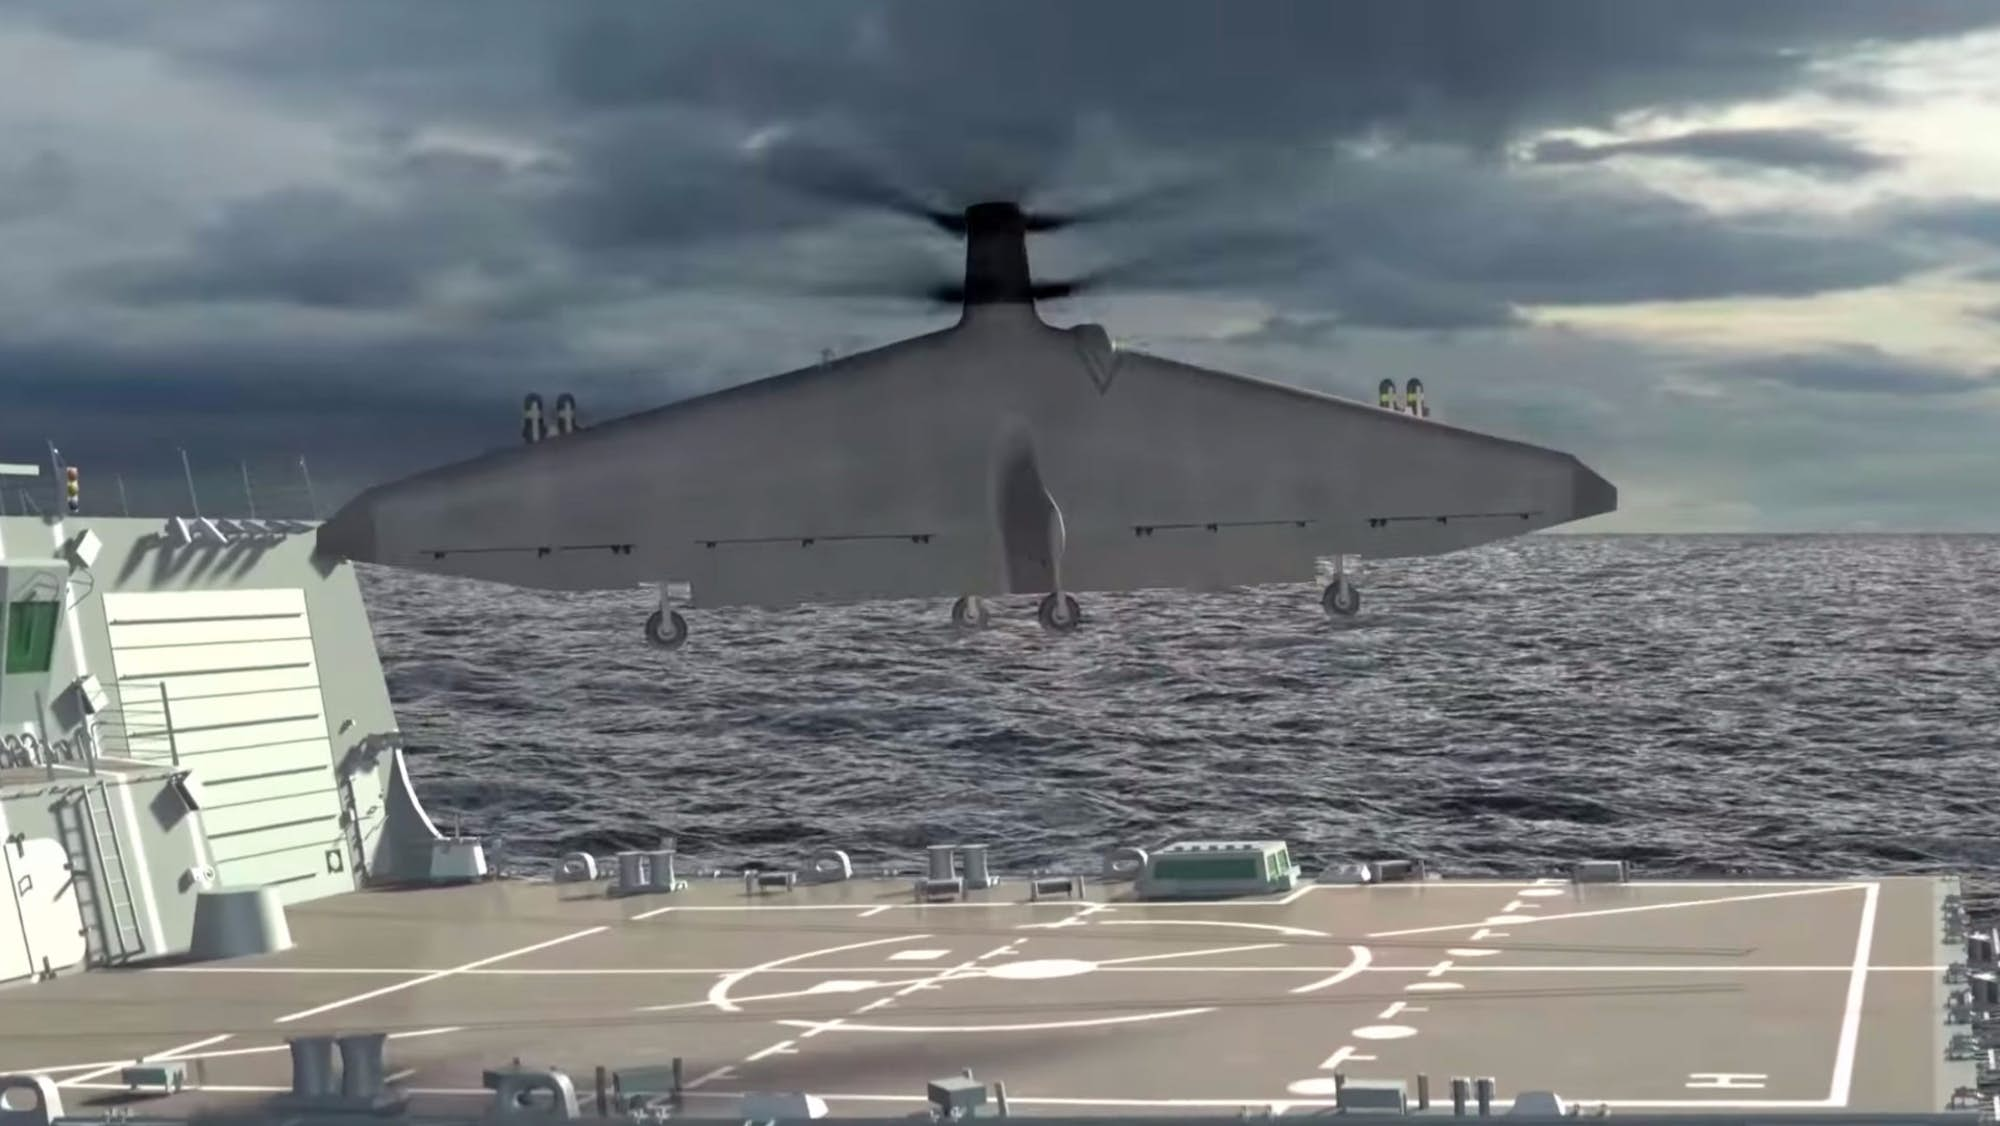 Concept graphics of the Tern UAS lifting off vertically from the flight deck of a ship at sea. Source: Northrop Grumman/YouTube